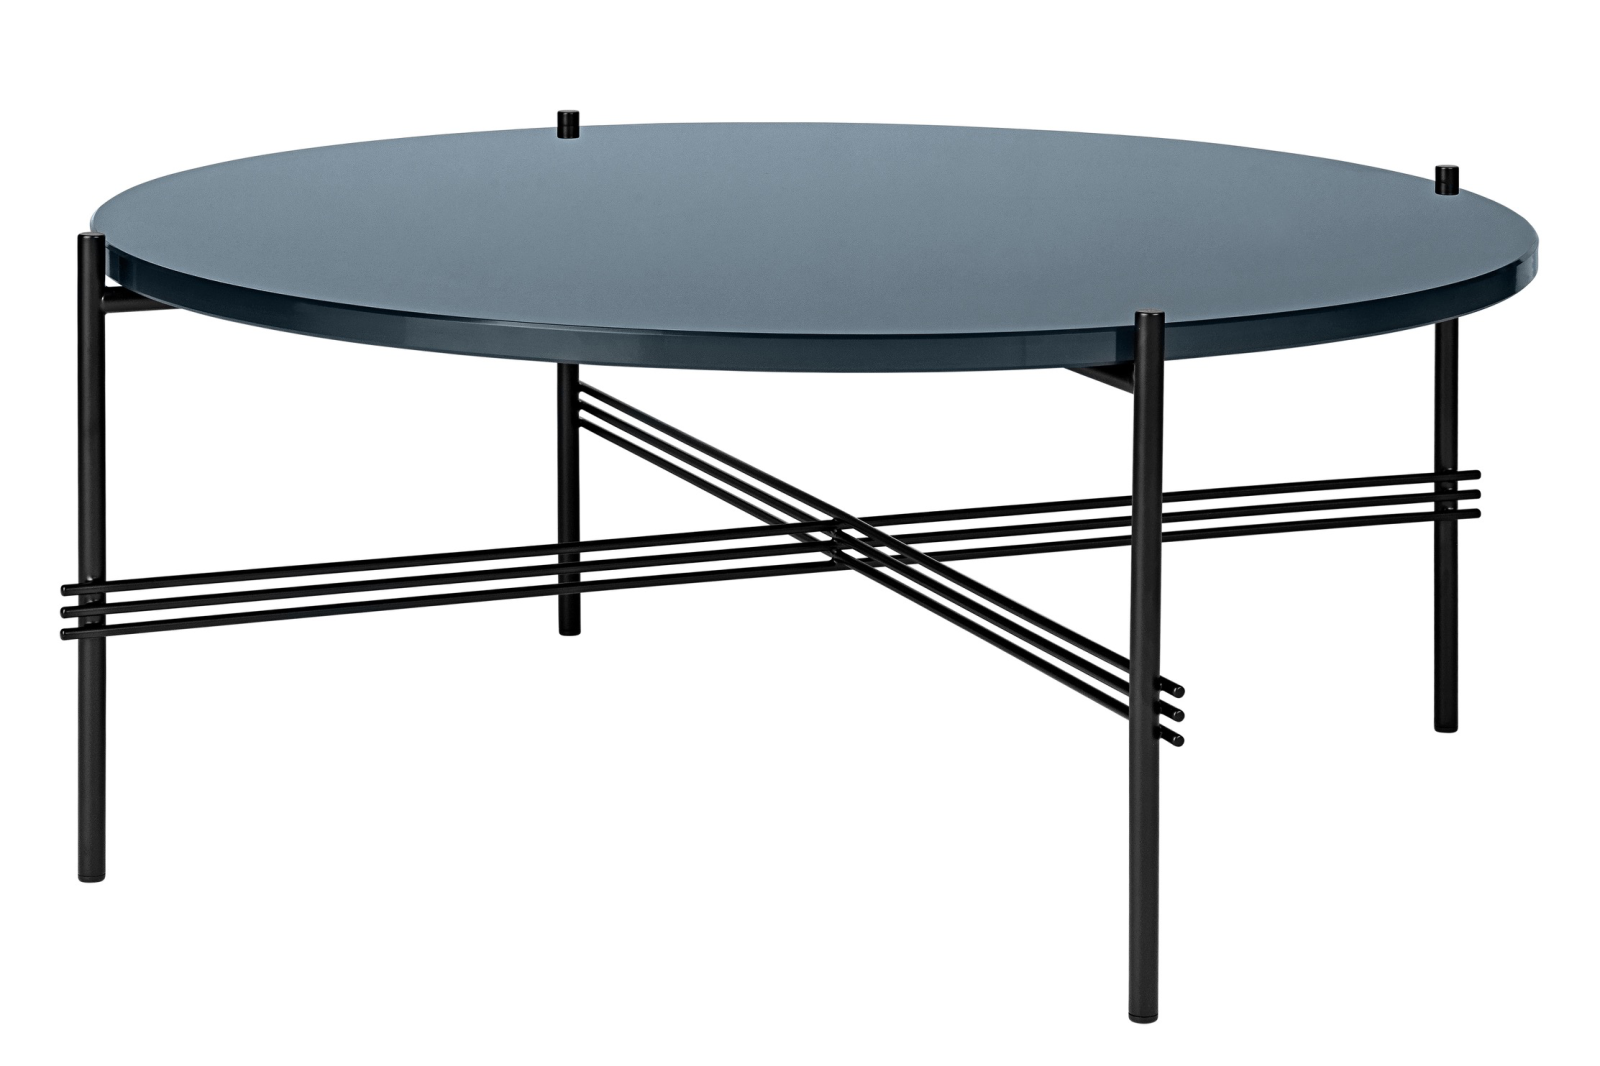 TS Round Coffee Table with Glass Top - Black Frame Grey Blue Top and Black Frame, 0 80 x 35 cm